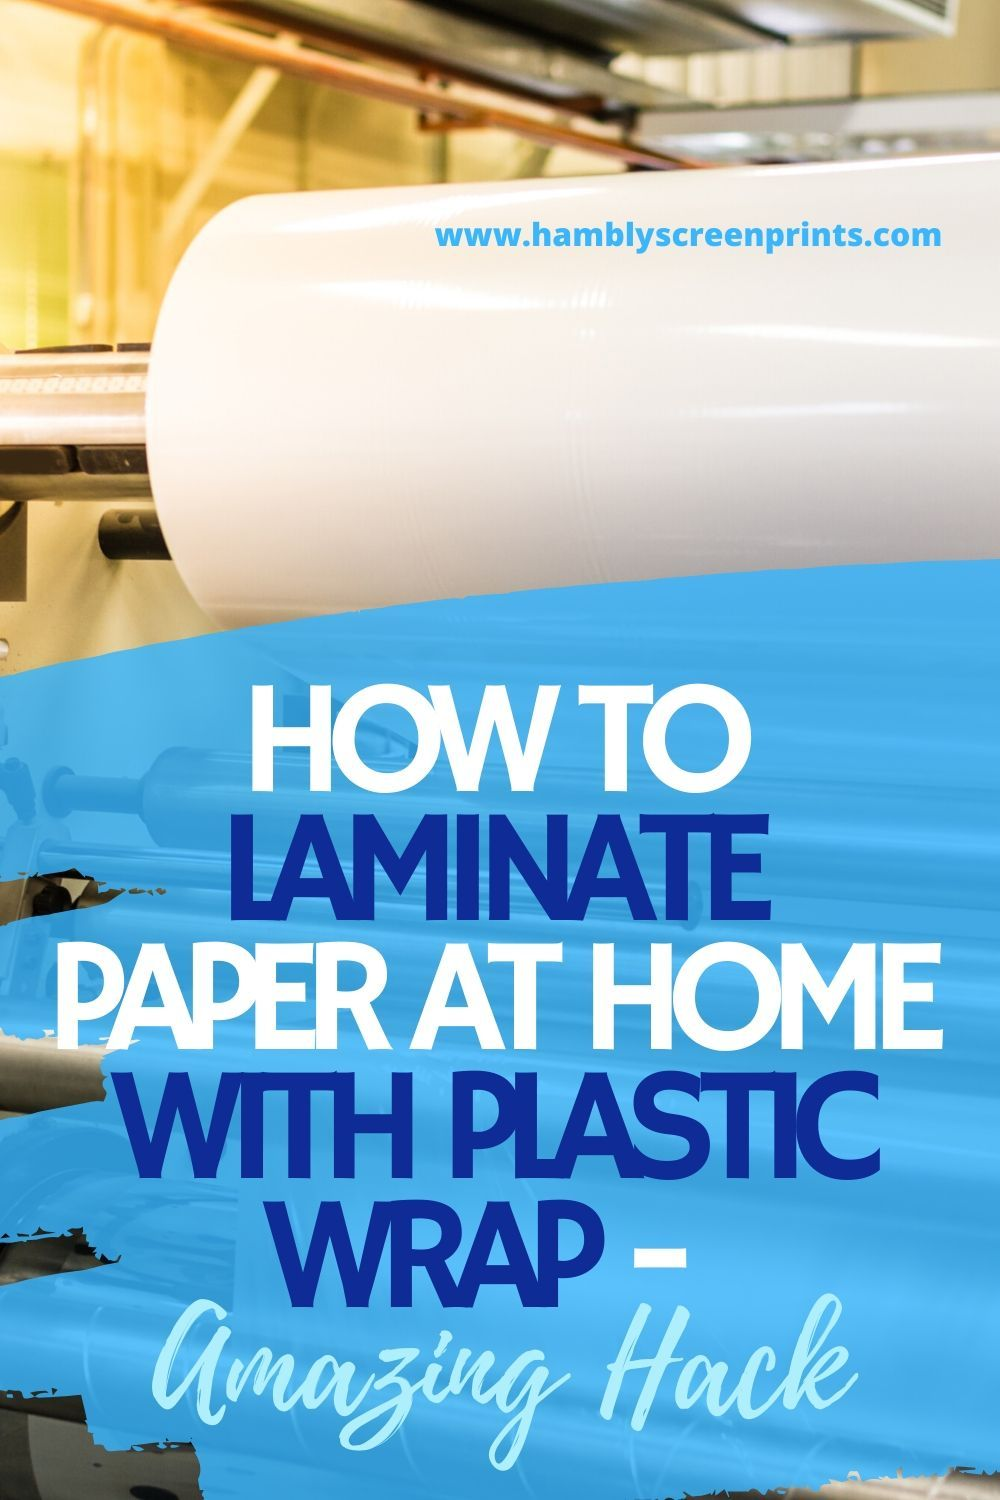 How To Laminate Paper At Home With Plastic Wrap Diy Without Machine In 2020 Laminating Paper Laminate Clear Packing Tape